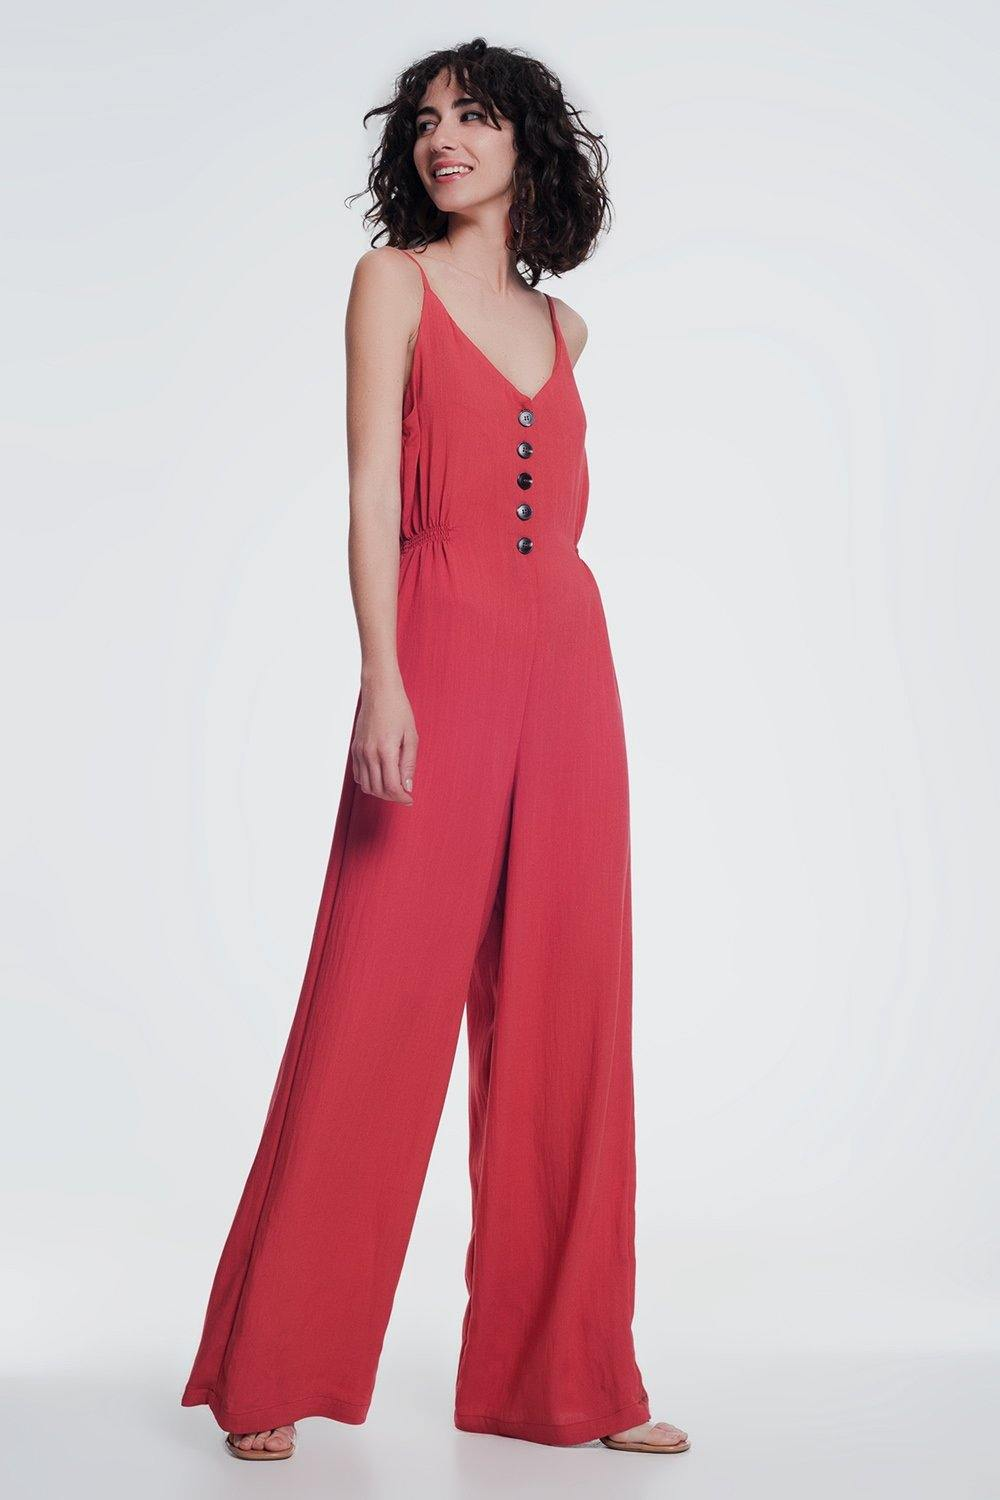 Q2 Orange jumpsuit with button detail